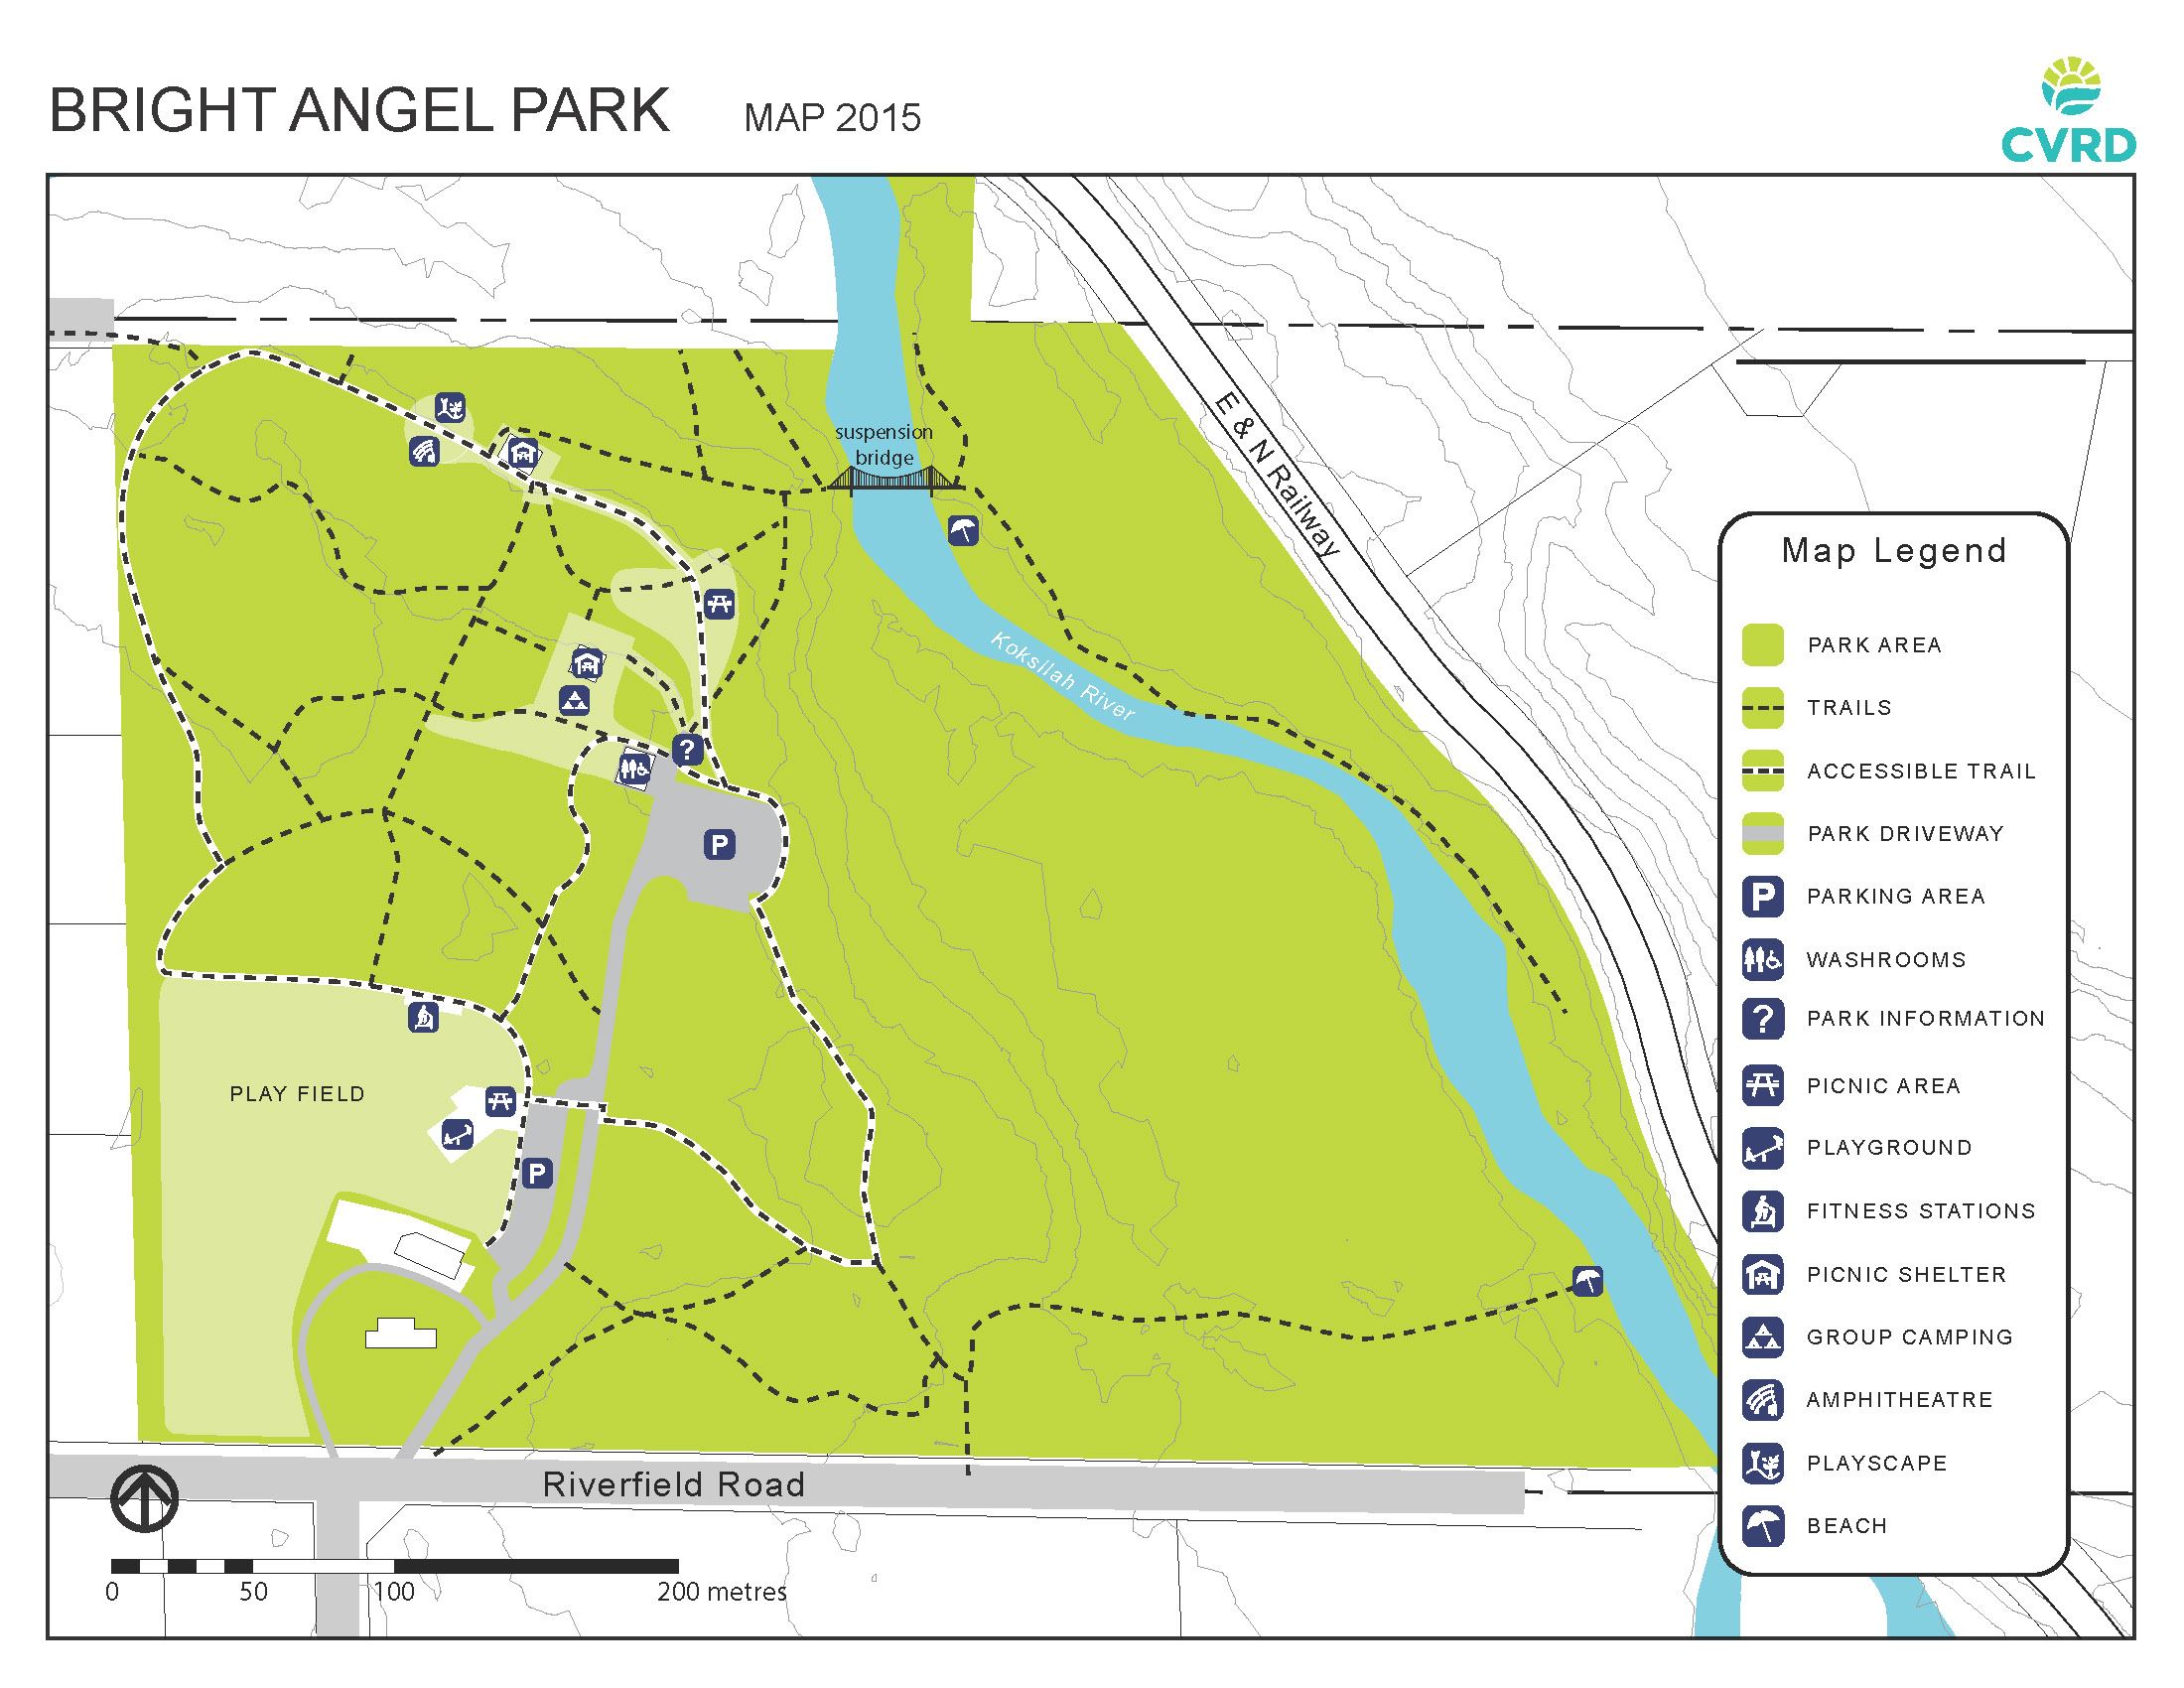 Bright Angel Park Map